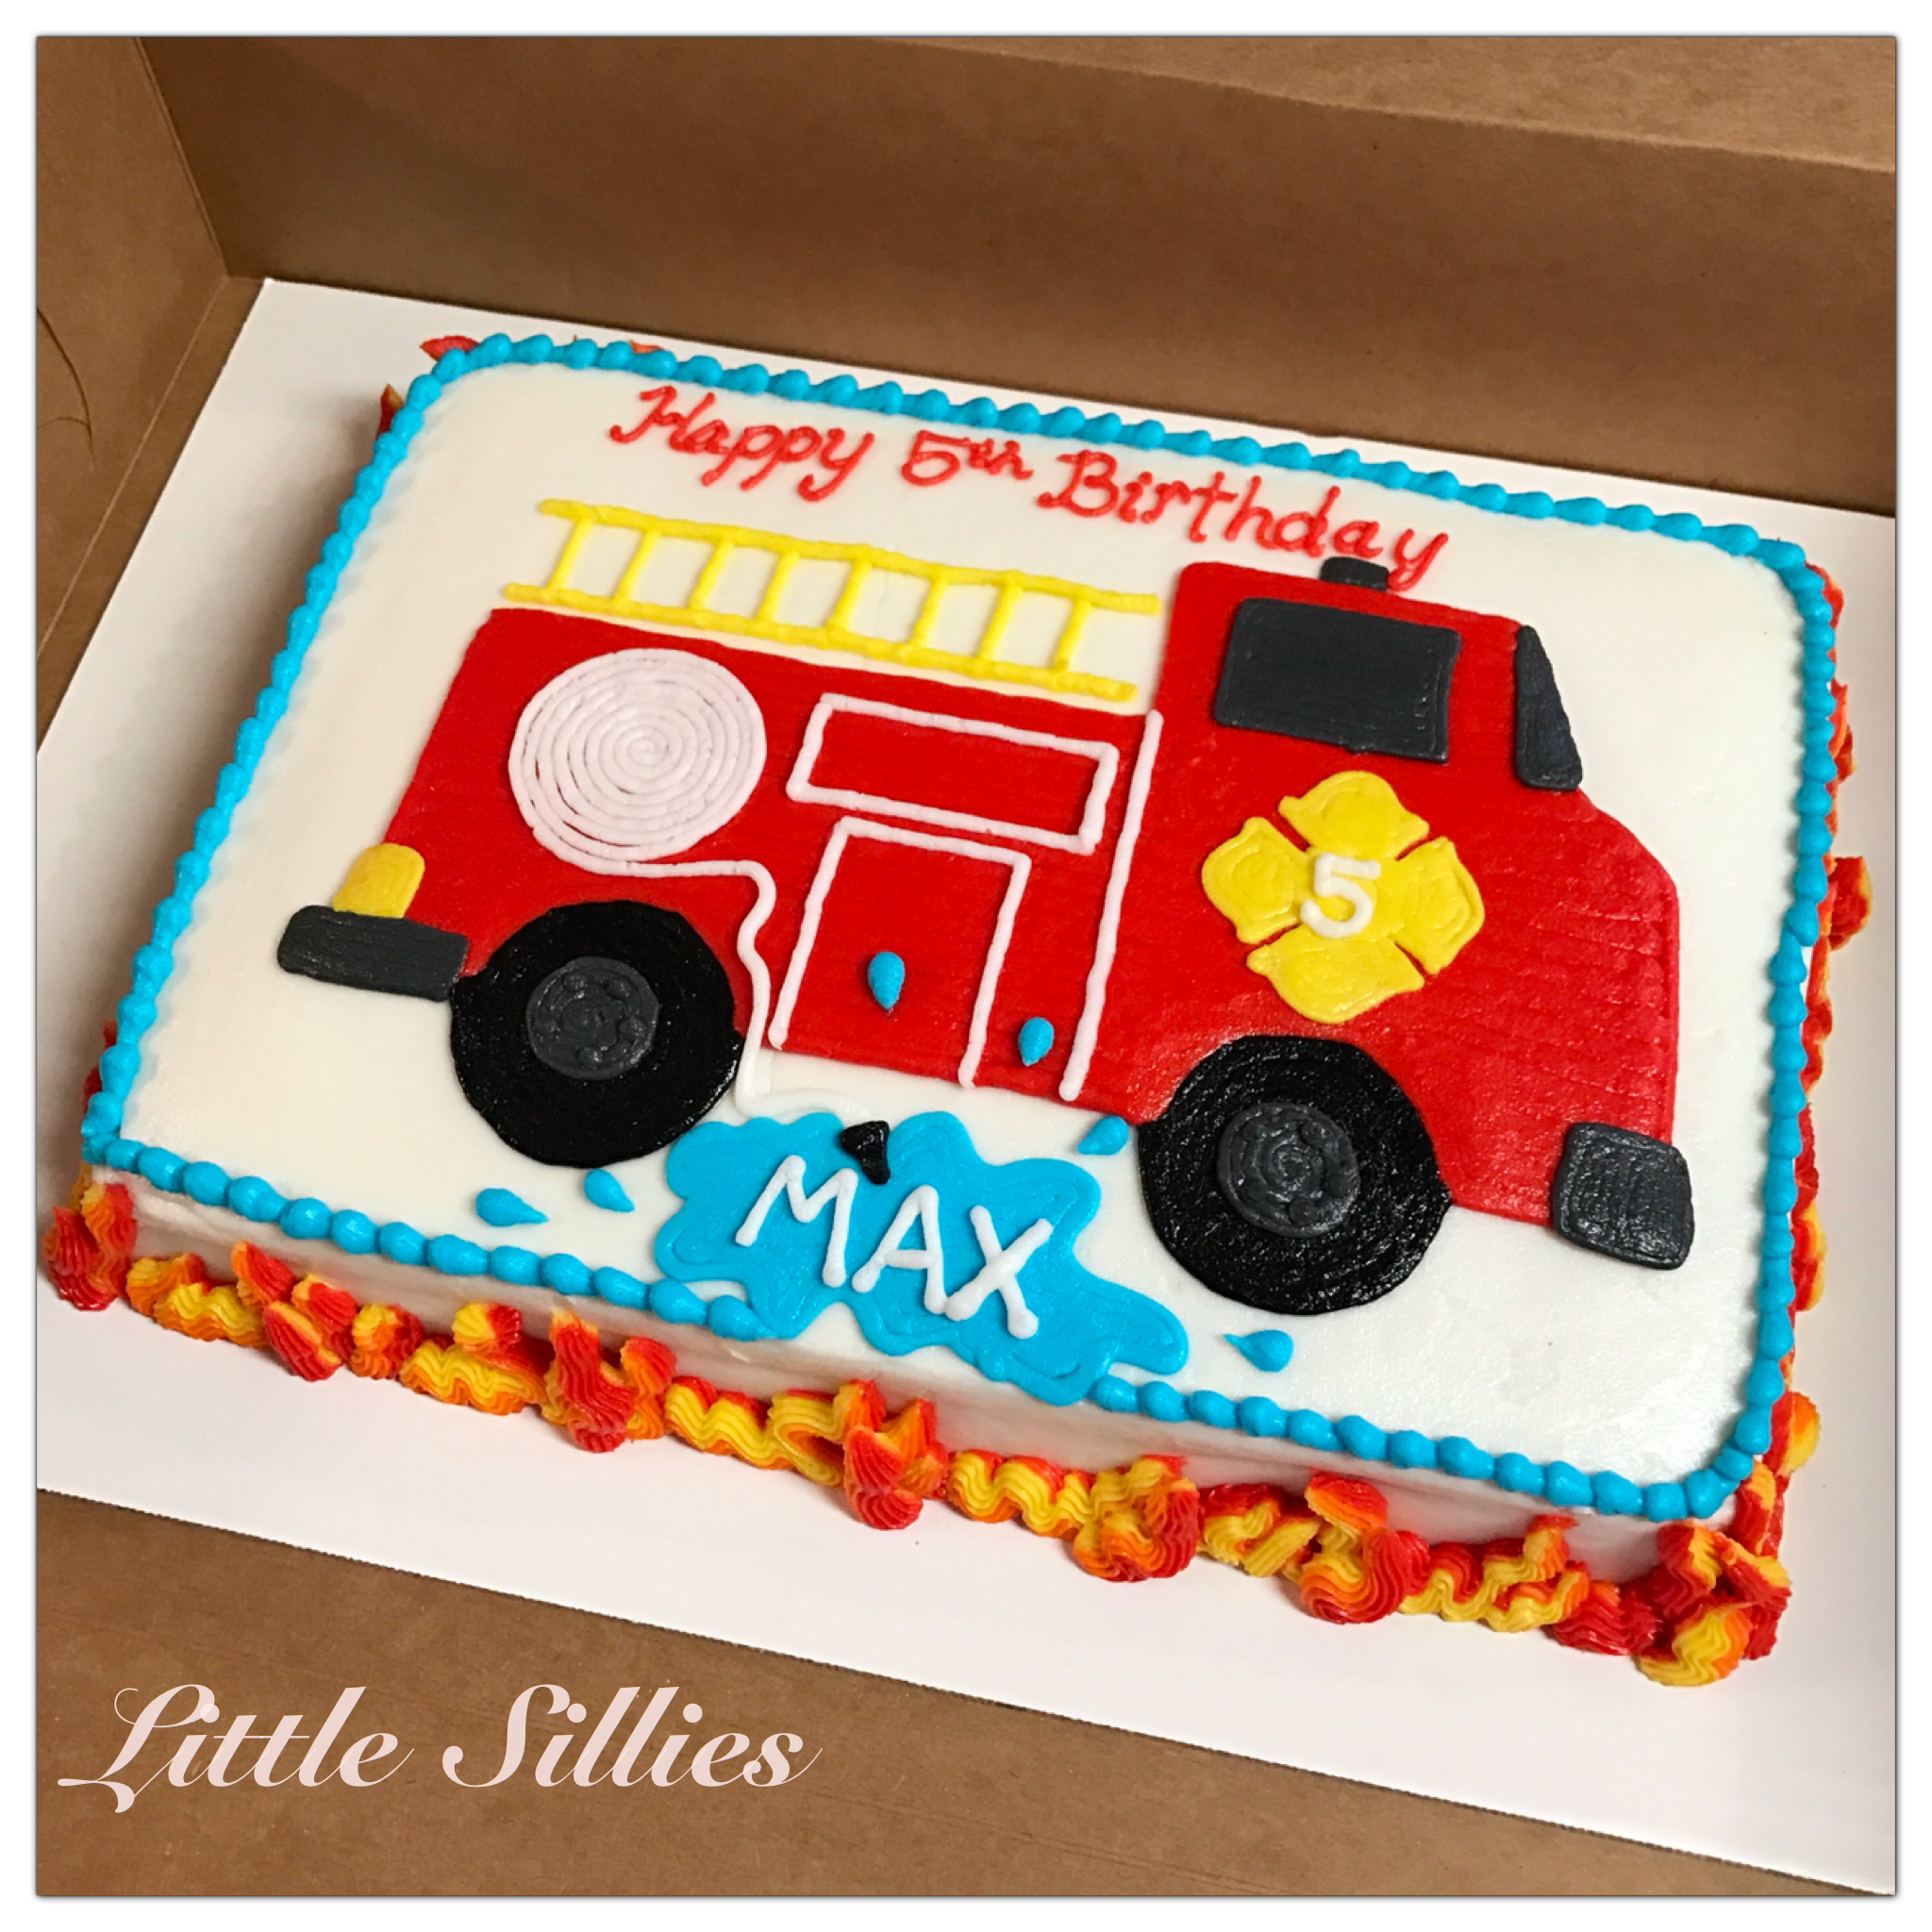 Strange A Fire Truck Sheet Cake With Images Fire Man Birthday Party Personalised Birthday Cards Veneteletsinfo